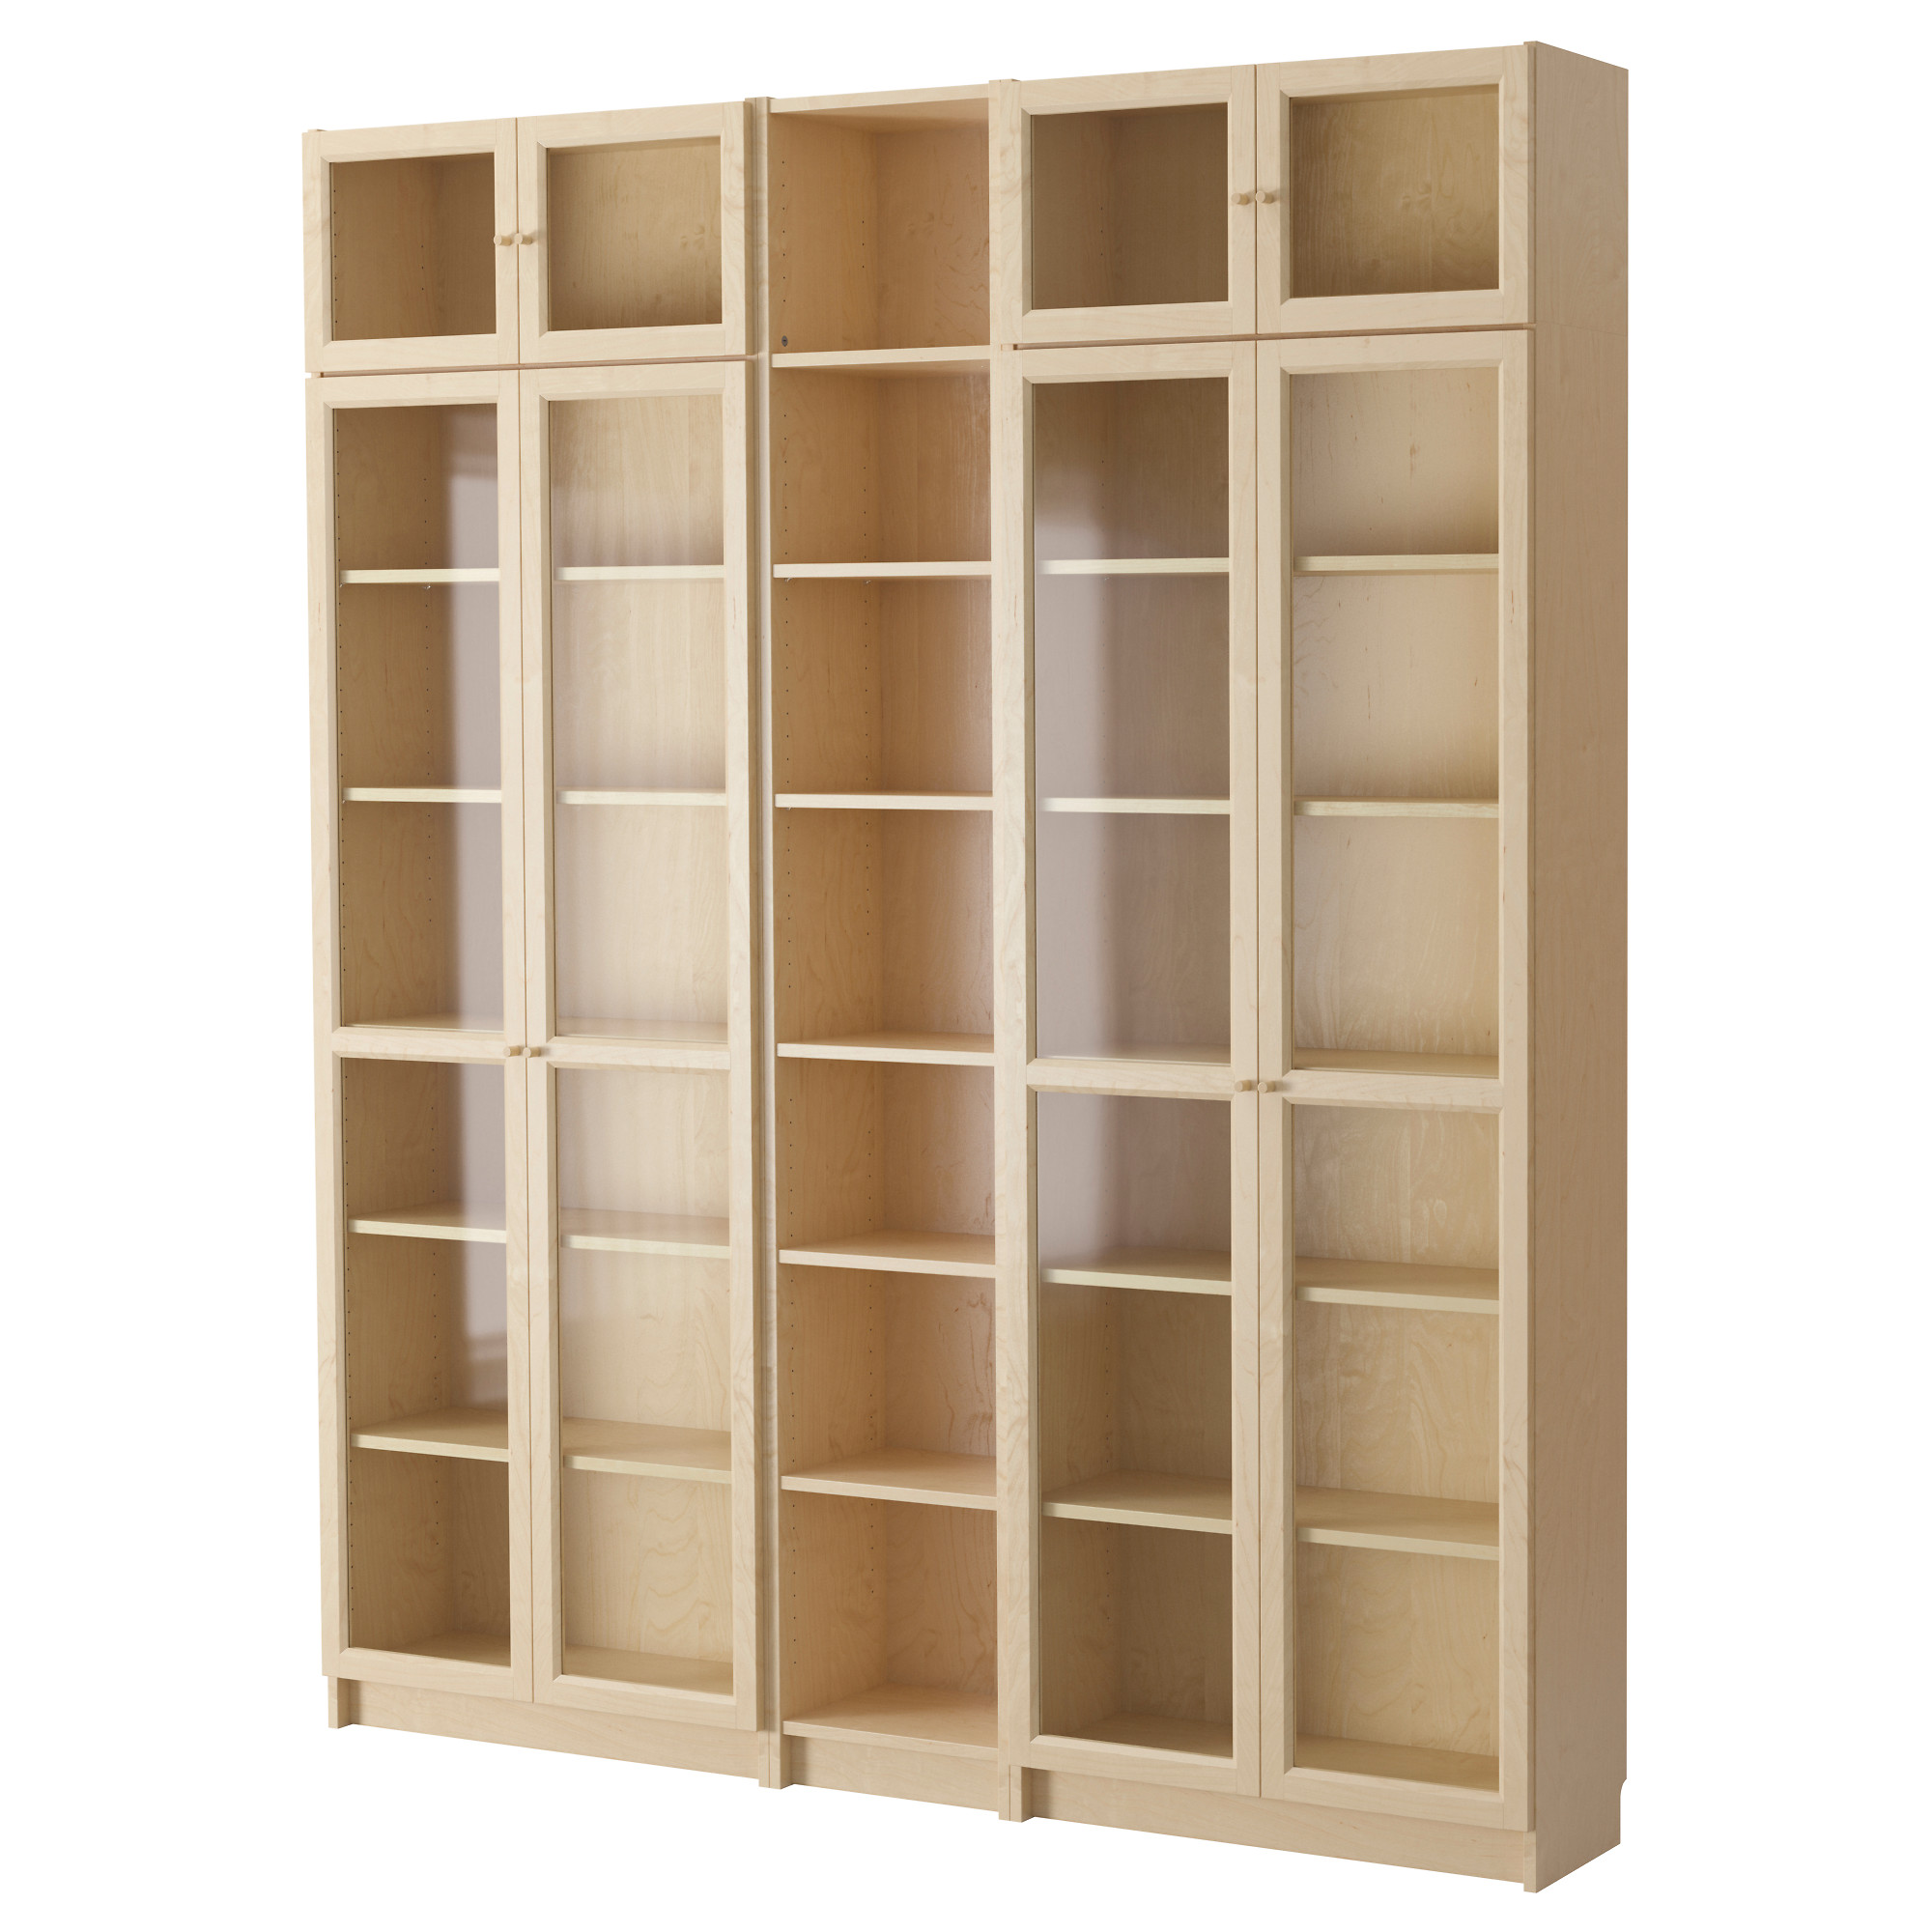 tall bookshelves billy / oxberg bookcase, birch veneer width: 78 3/4  KVRUQGK